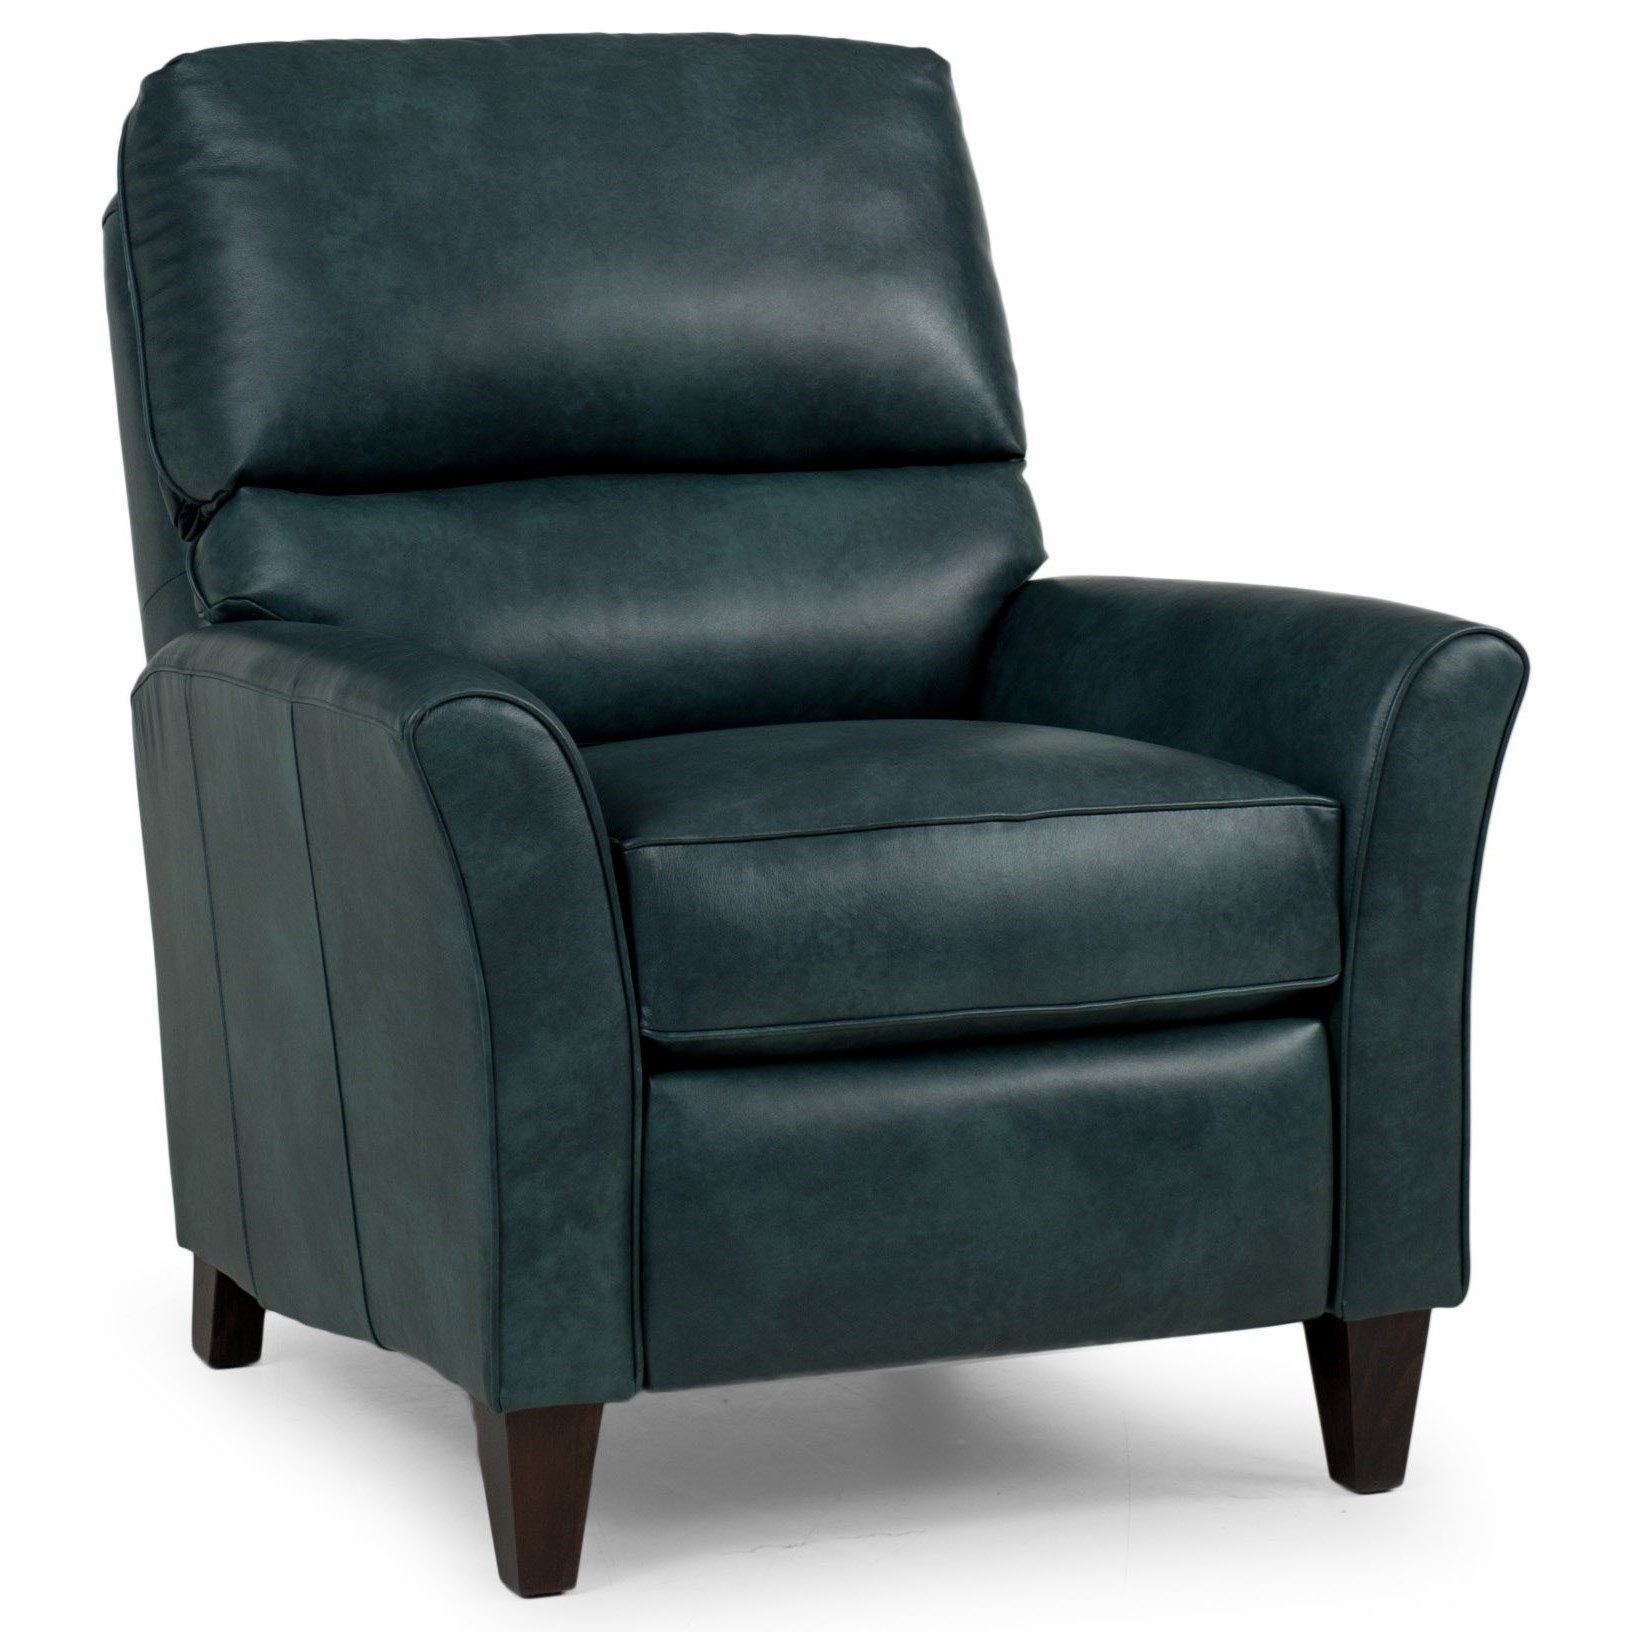 Smith Brothers 524 Pressback Recliner - Item Number: 524-33-3217